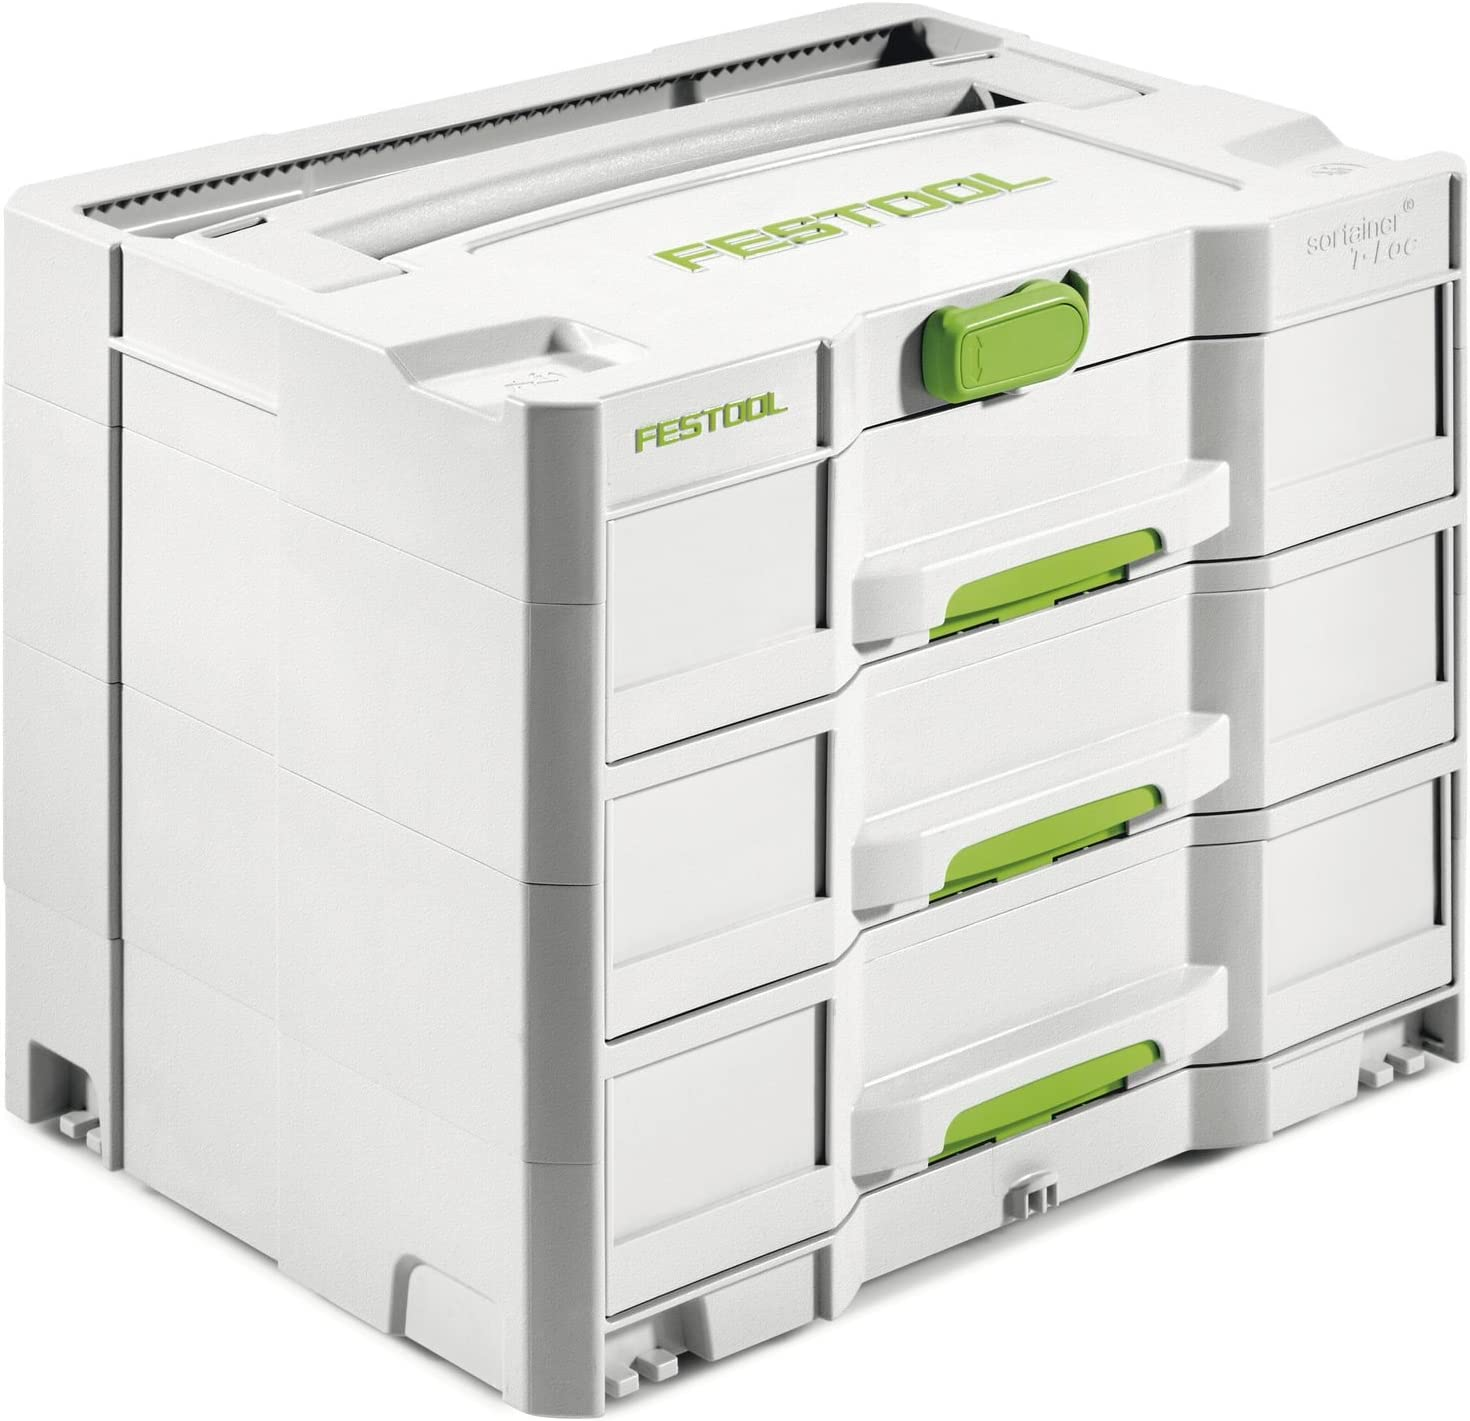 Festool 200119 SYS 4 Sortainer Best Tool Chest Under 500